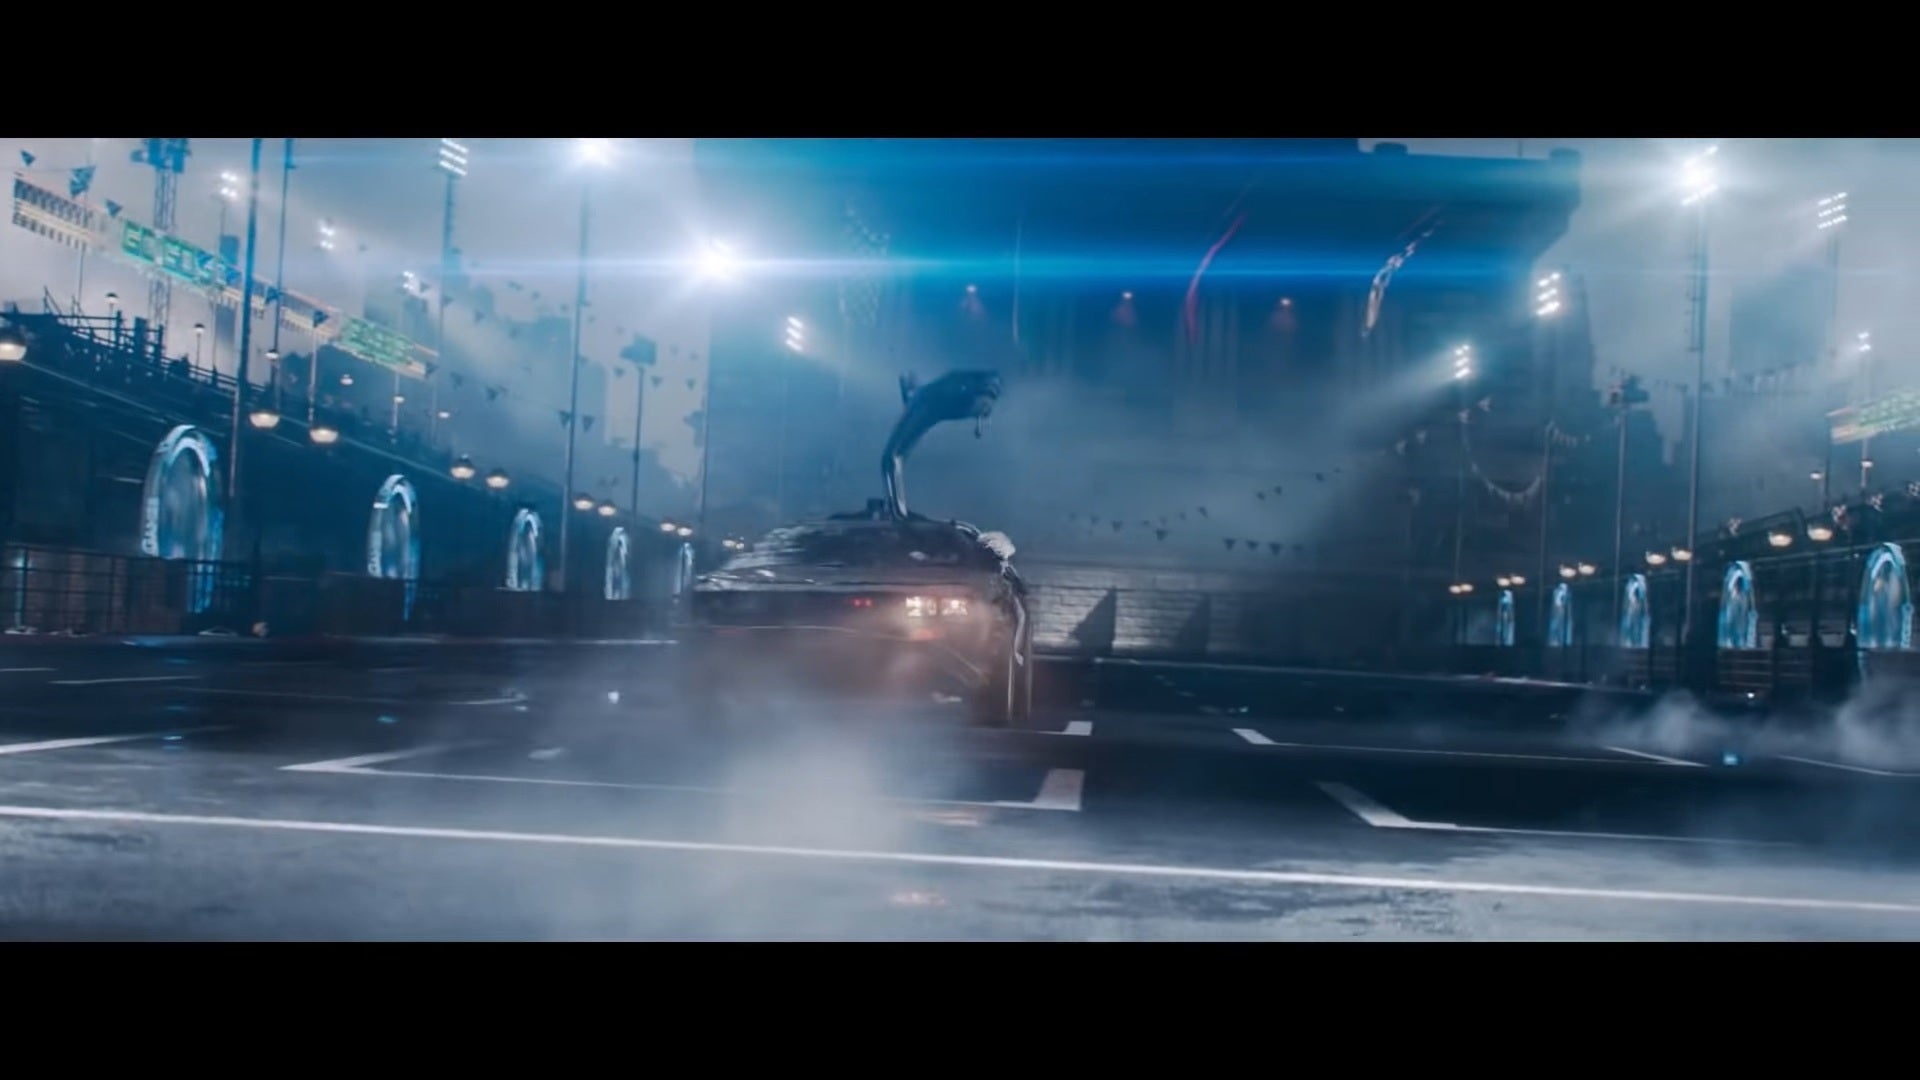 It's Time We Talk About The Racing Scene In Ready Player One